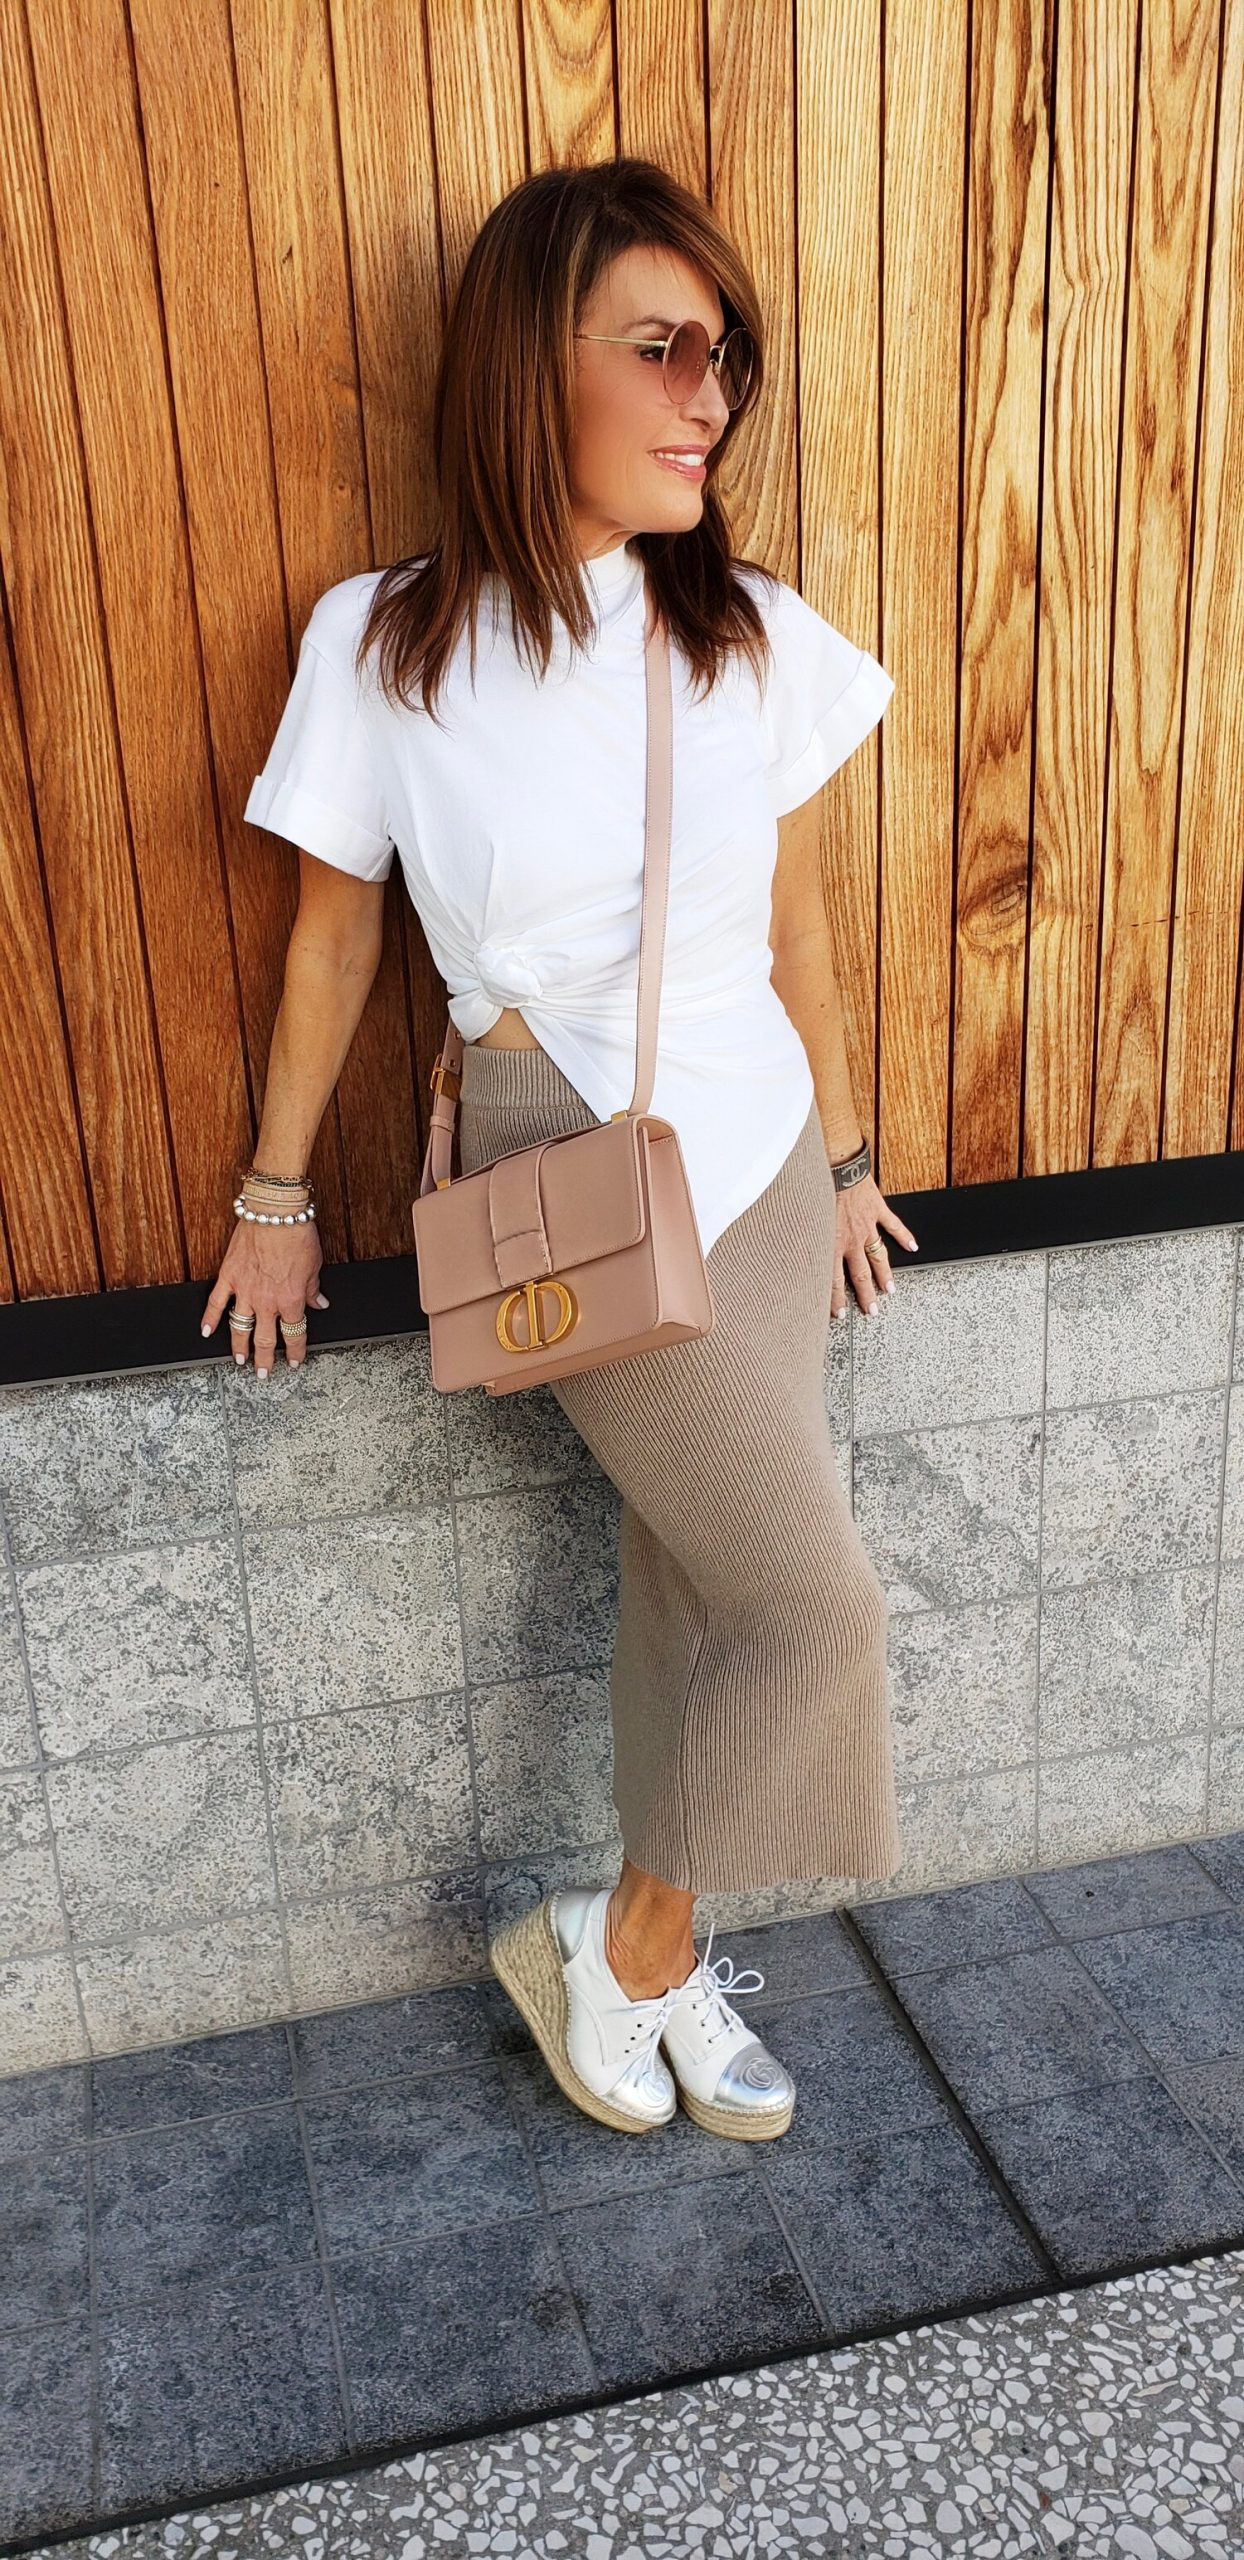 A Long Knit Skirt and Short White Tee.